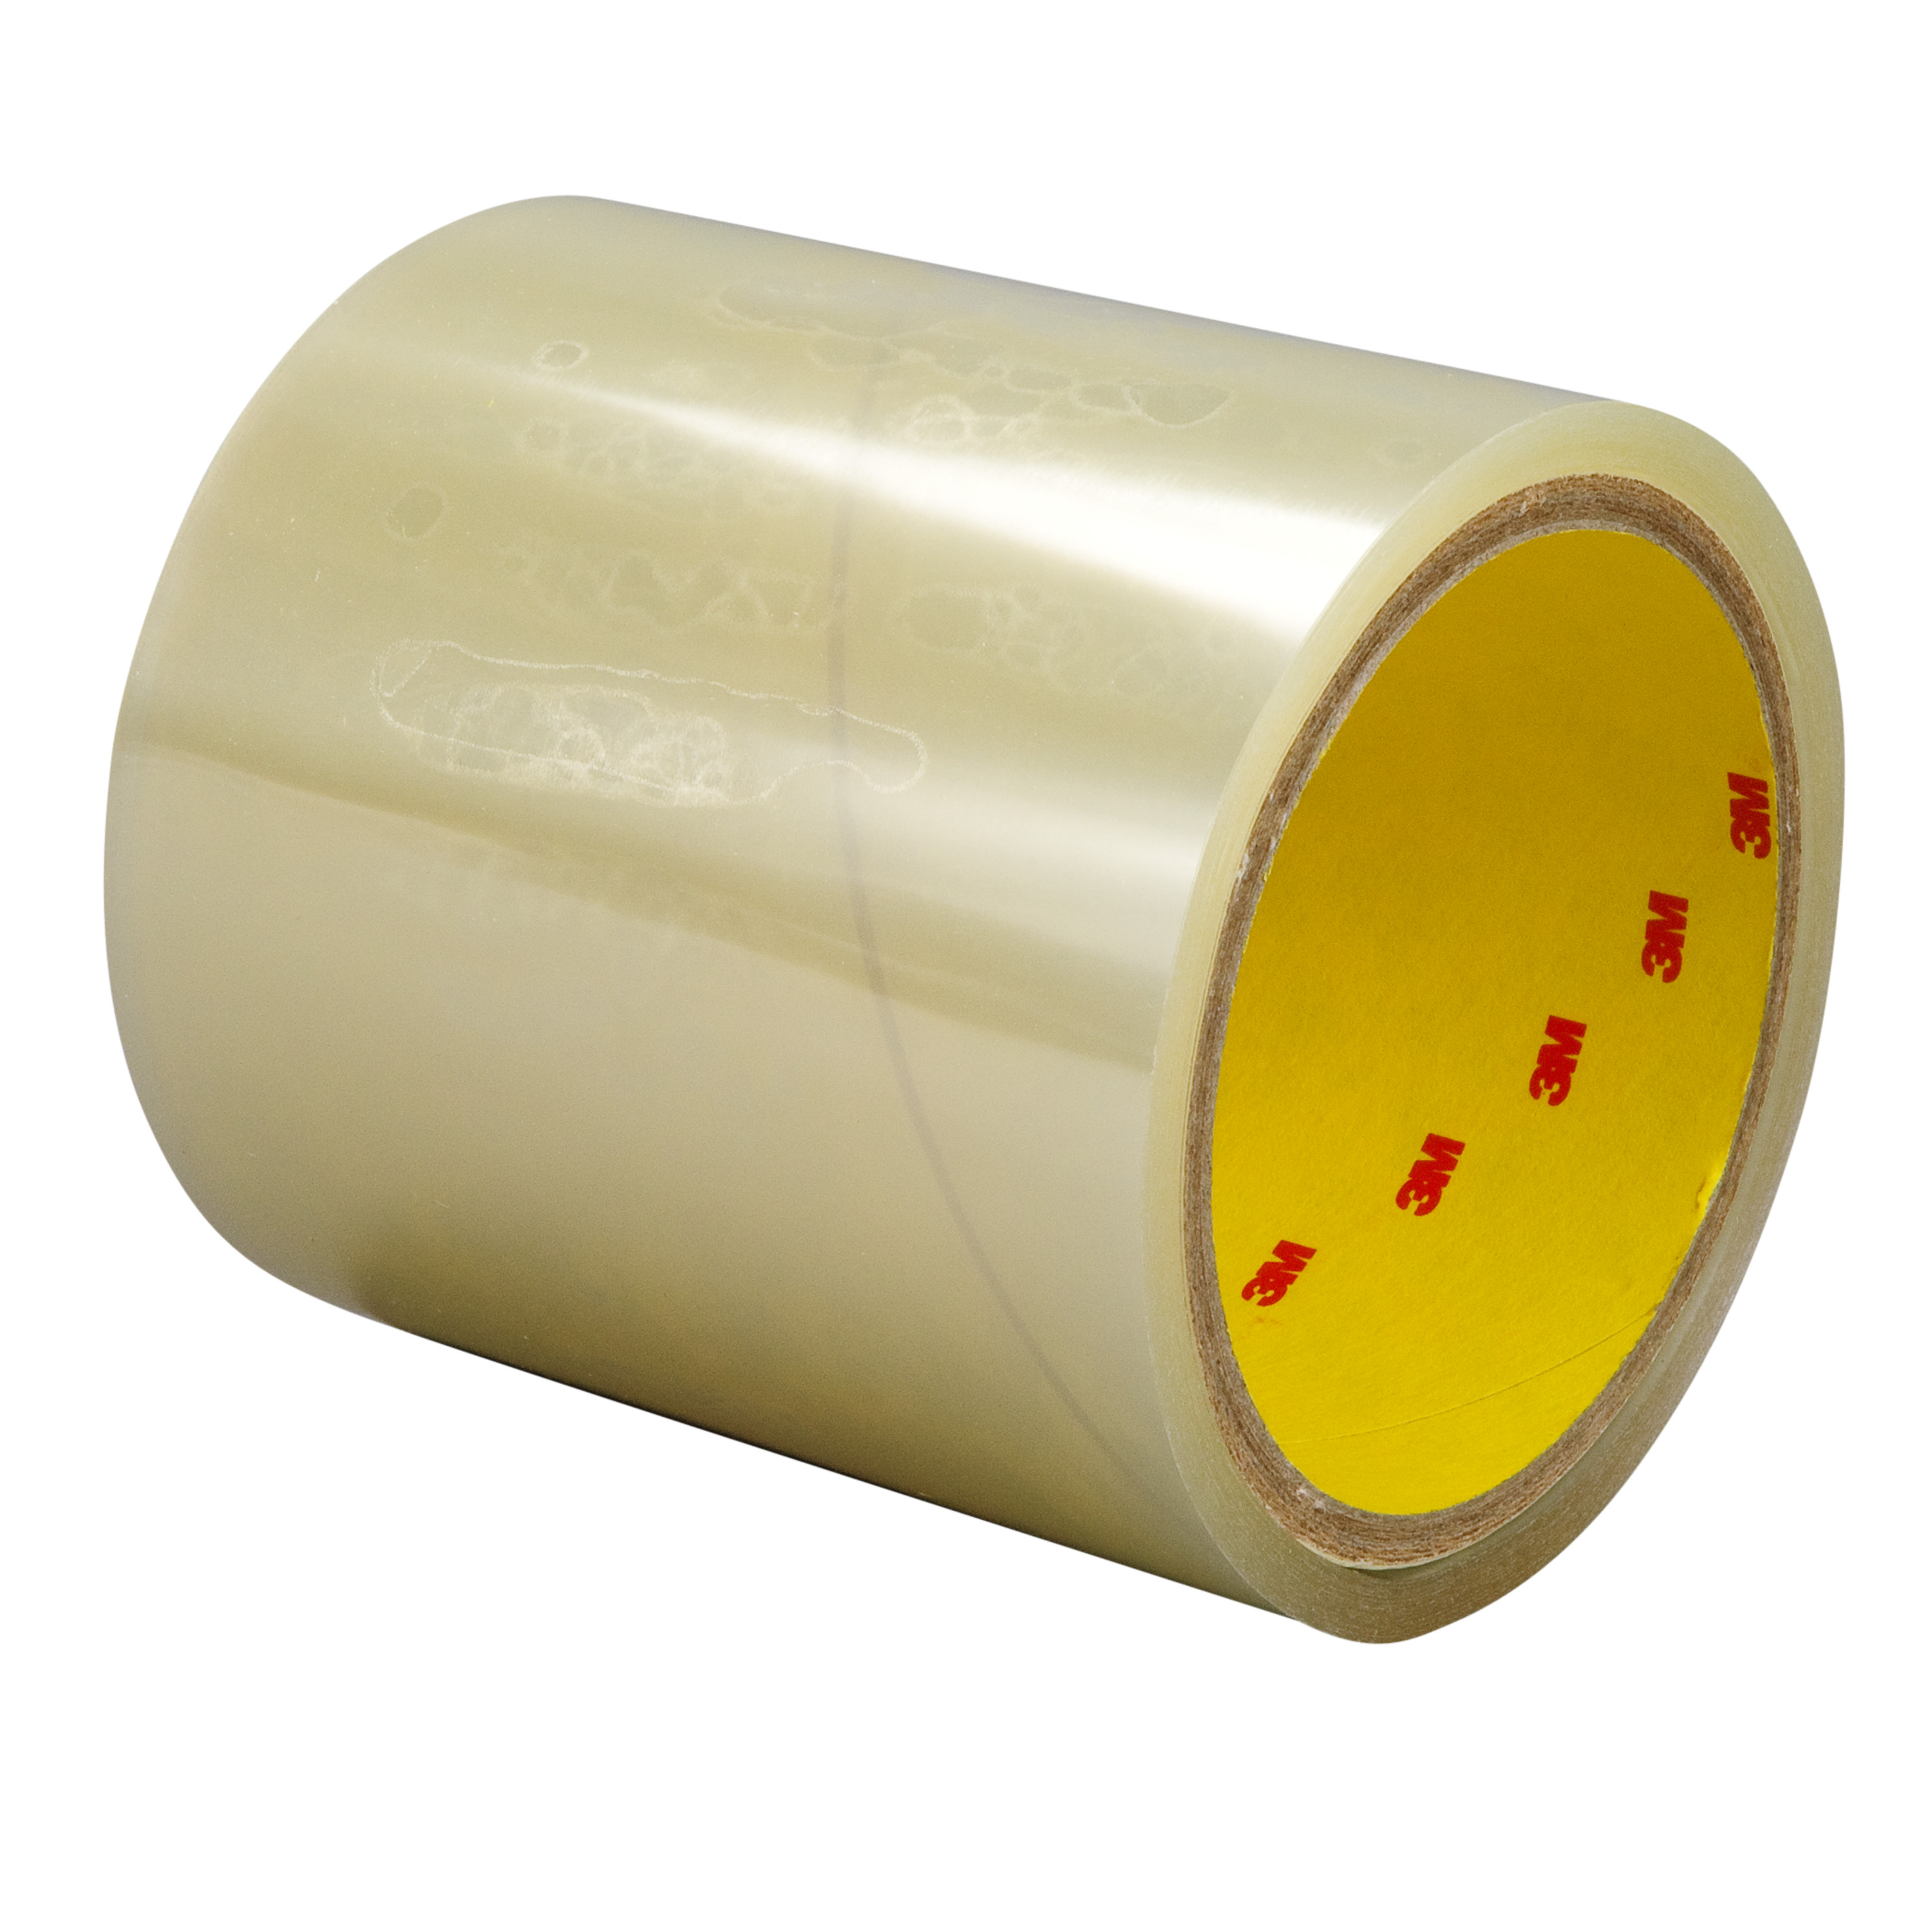 3M™ Double Coated Tape 9629FL, Clear, 4 mil, Roll, Config